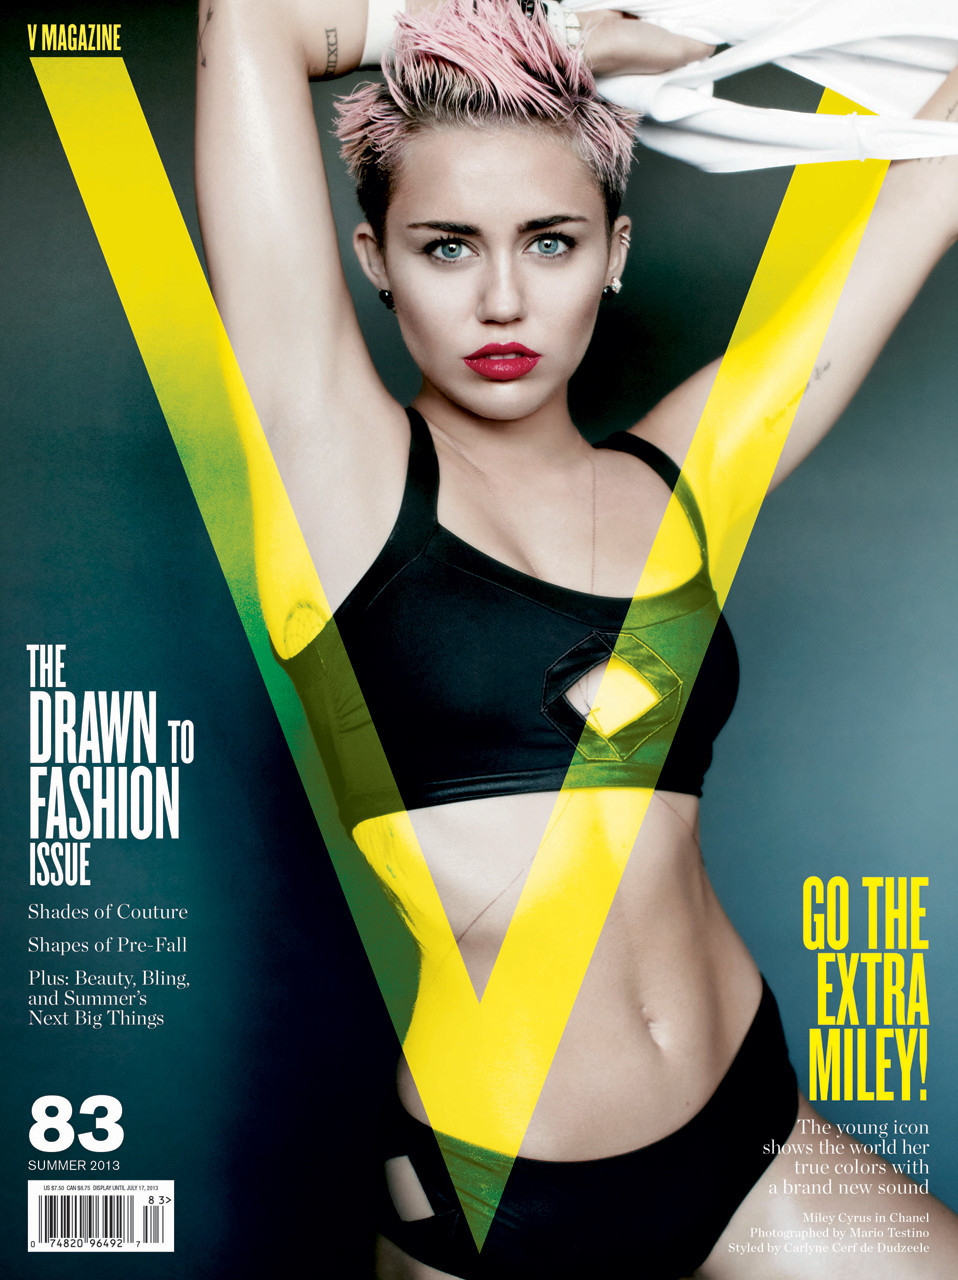 Miley Cyrus: I'm Sorry for Photos m